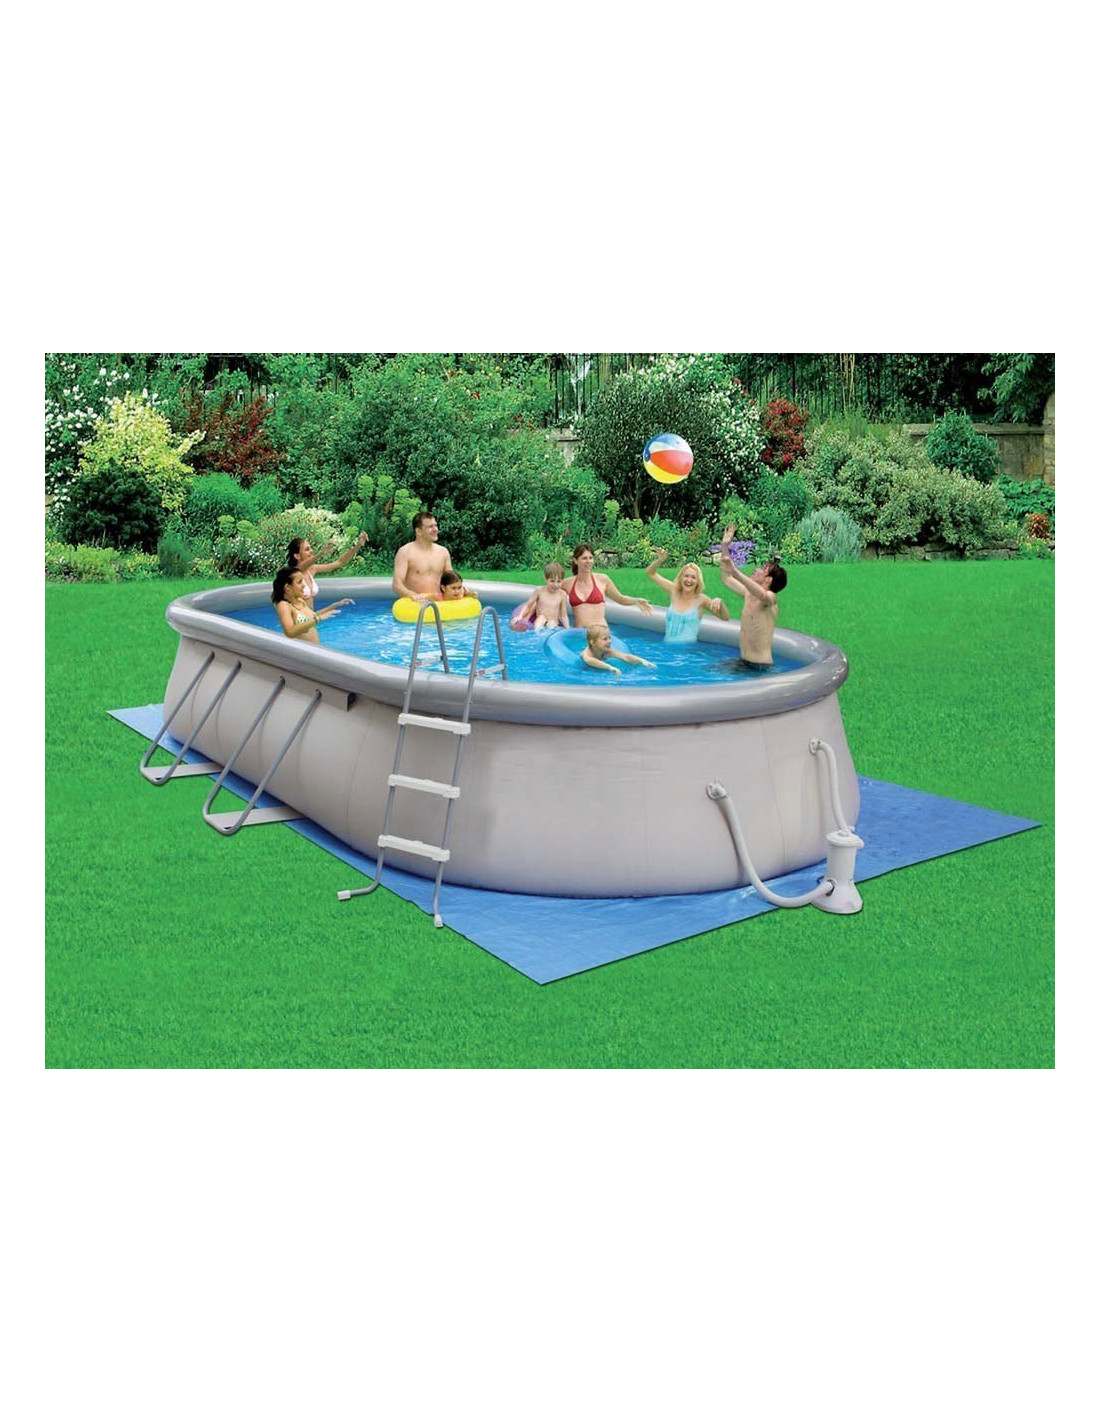 Piscine autoportante ovale 6 10 x 3 66 x 1 22m garden leisure for Piscine auto portante